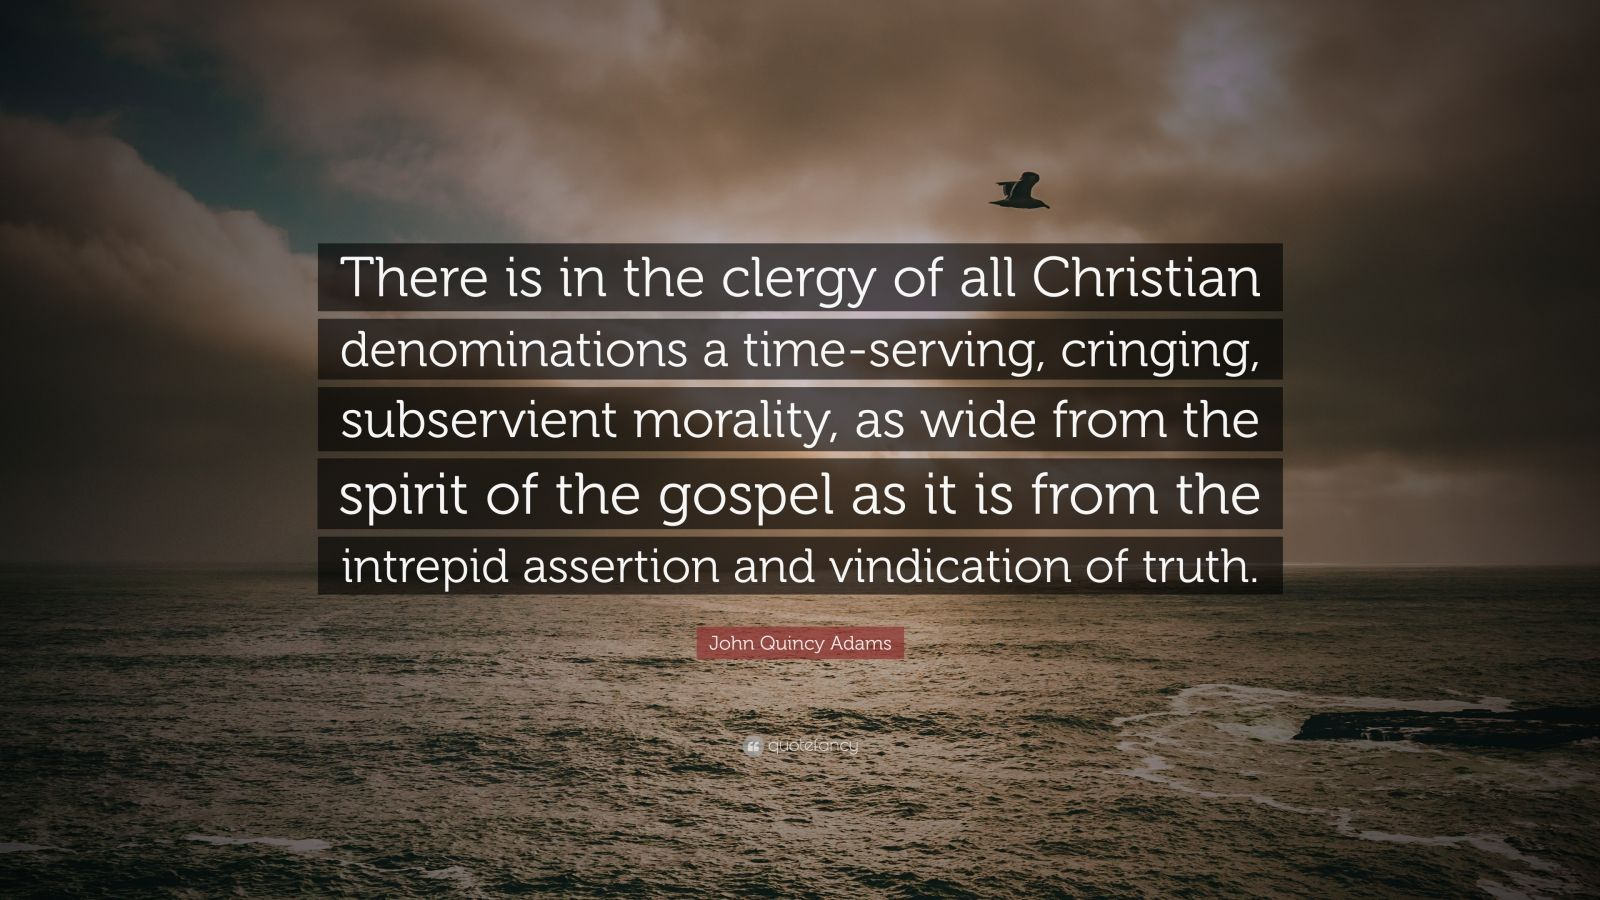 "John Quincy Adams Quote: ""There is in the clergy of all Christian denominations a time-serving, cringing, subservient morality, as wide from the spirit of the gospel as it is from the intrepid assertion and vindication of truth."""